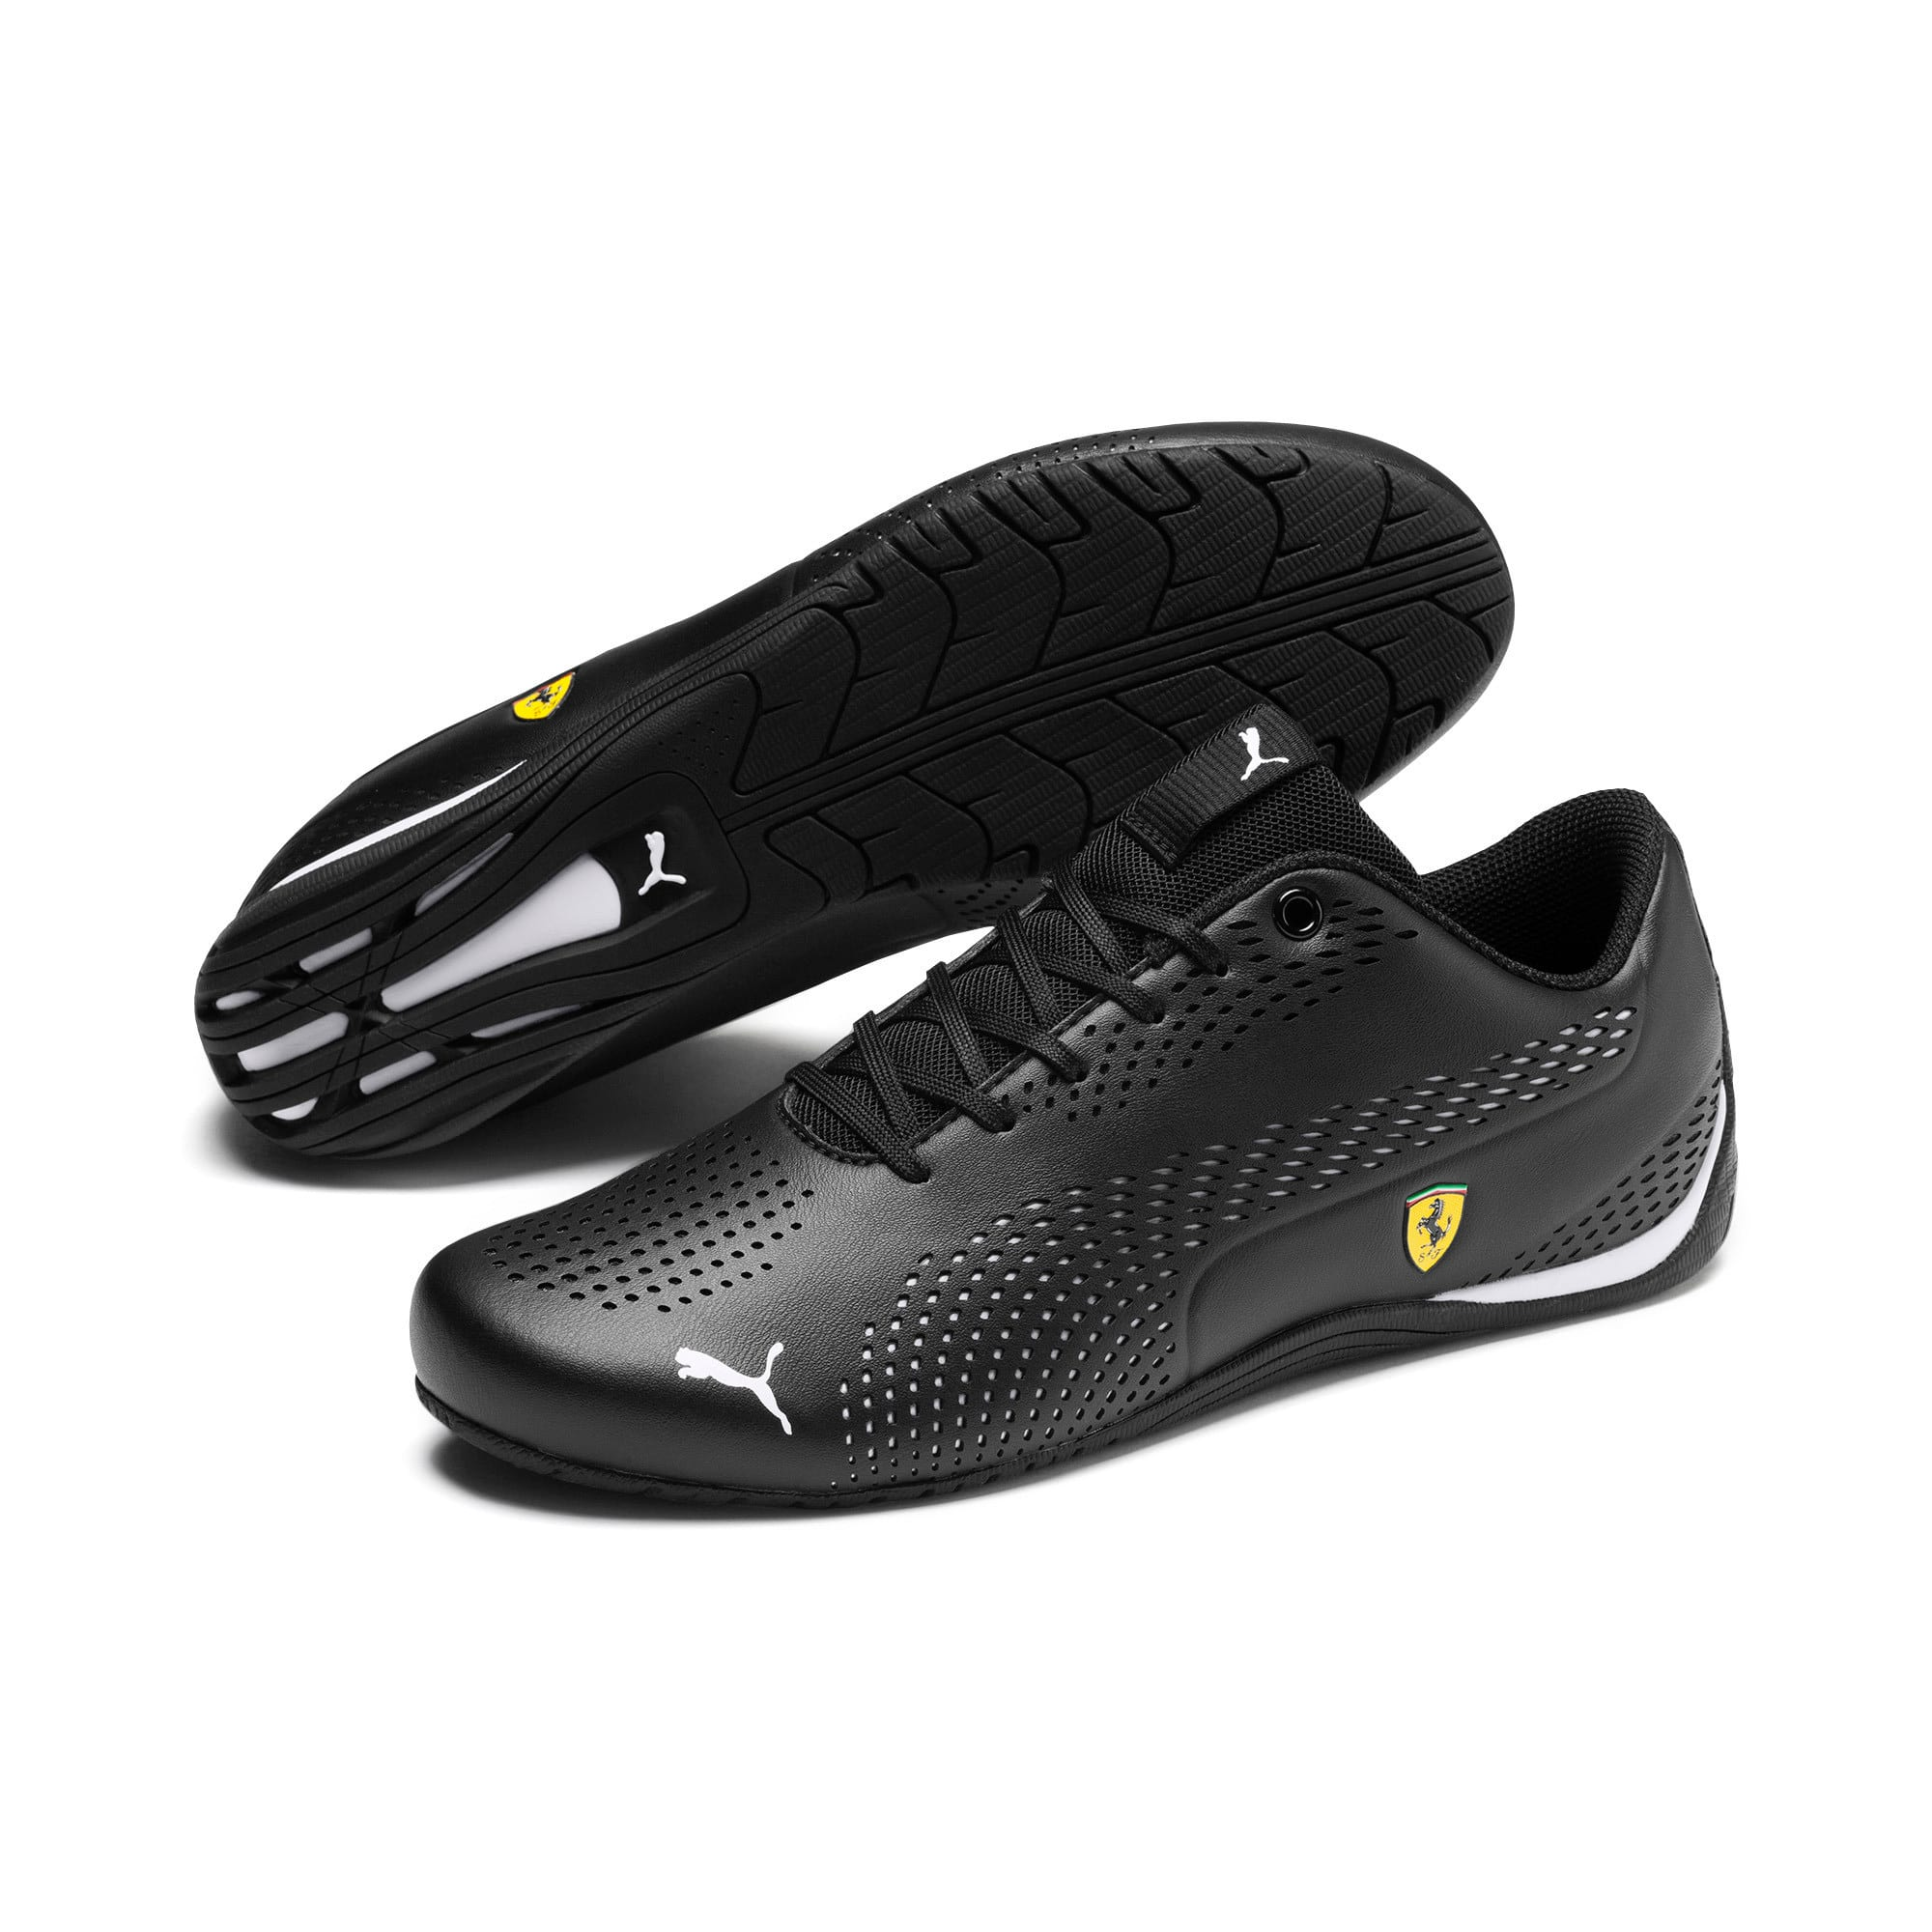 Thumbnail 3 of Ferrari Drift Cat 5 Ultra II Trainers, Puma Black-Puma White, medium